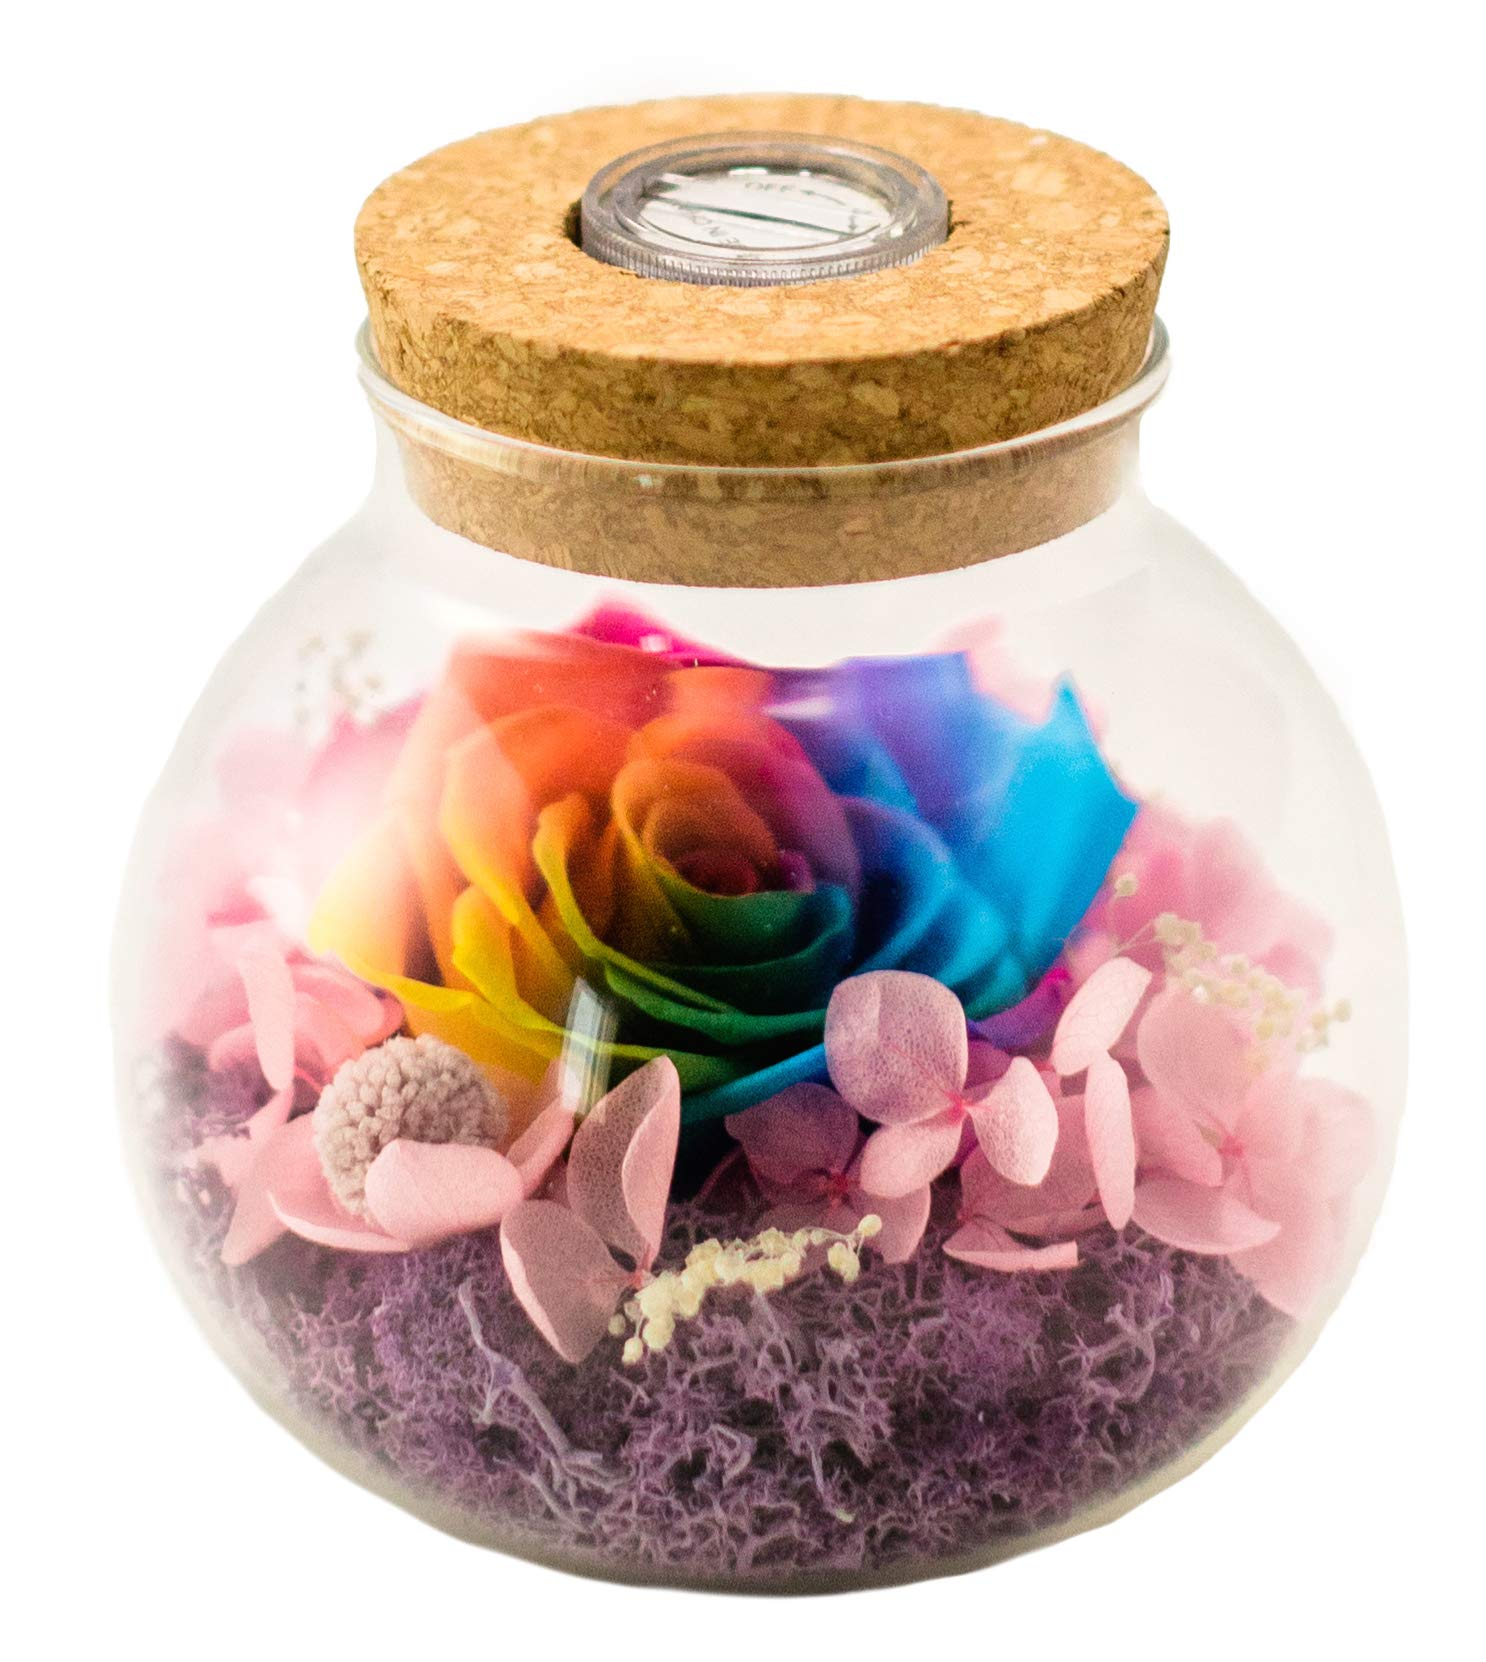 silk flower arrangements lilymelon handmade forever flower, preserved eternal real rose with led mood light for mother's day,birthday, anniversary, valentine's day, christmas (rainbow)